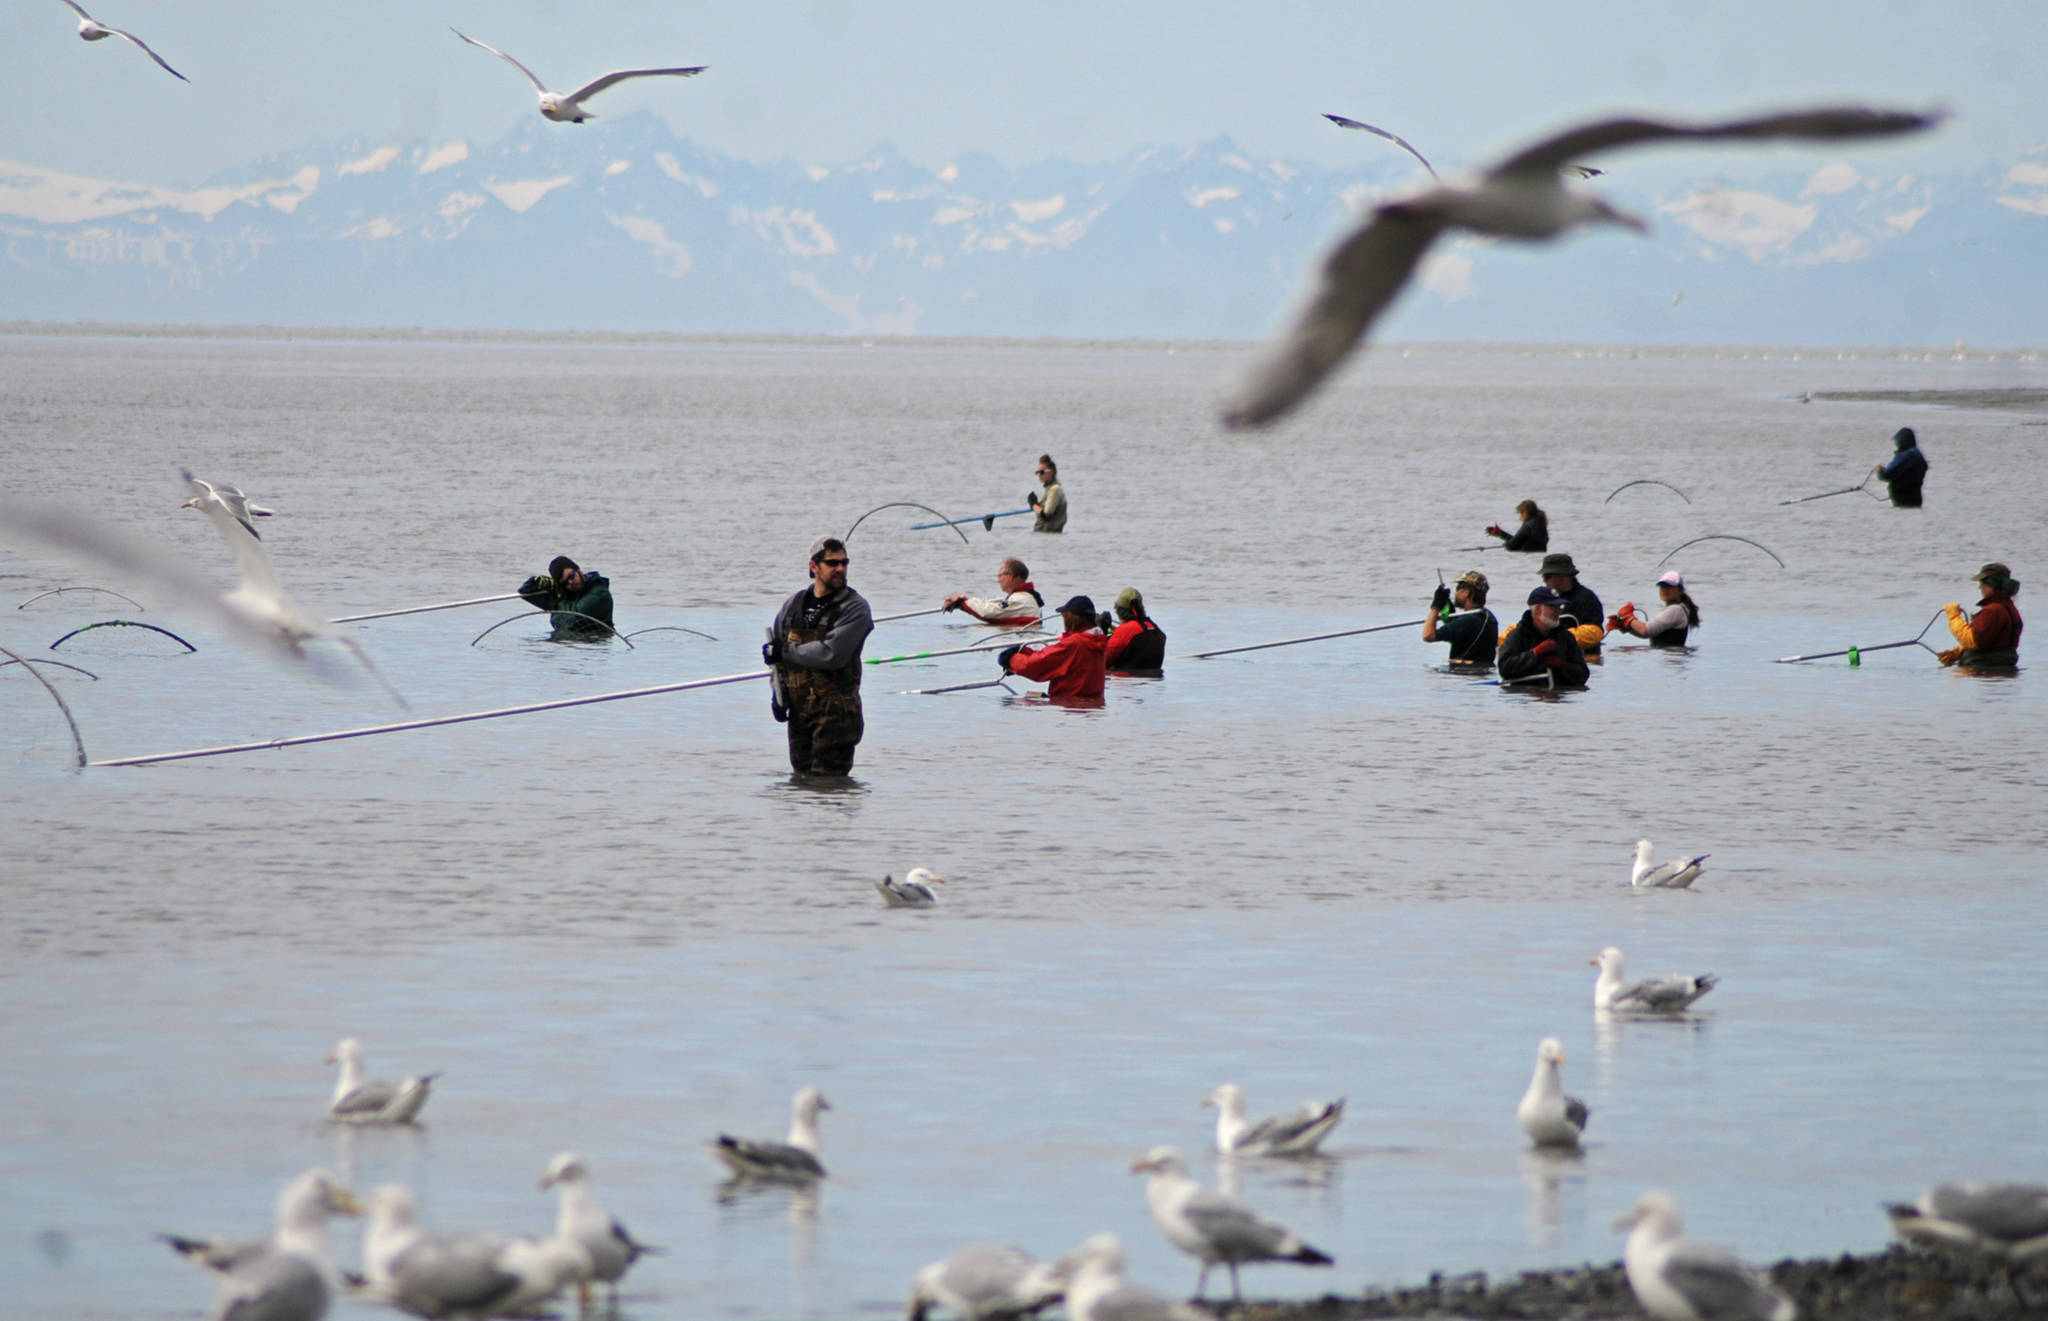 Dipnetters hold their nets offshore from the north Kenai Beach on Tuesday, July 11, 2017 in Kenai, Alaska. (Photo by Elizabeth Earl/Peninsula Clarion, file)